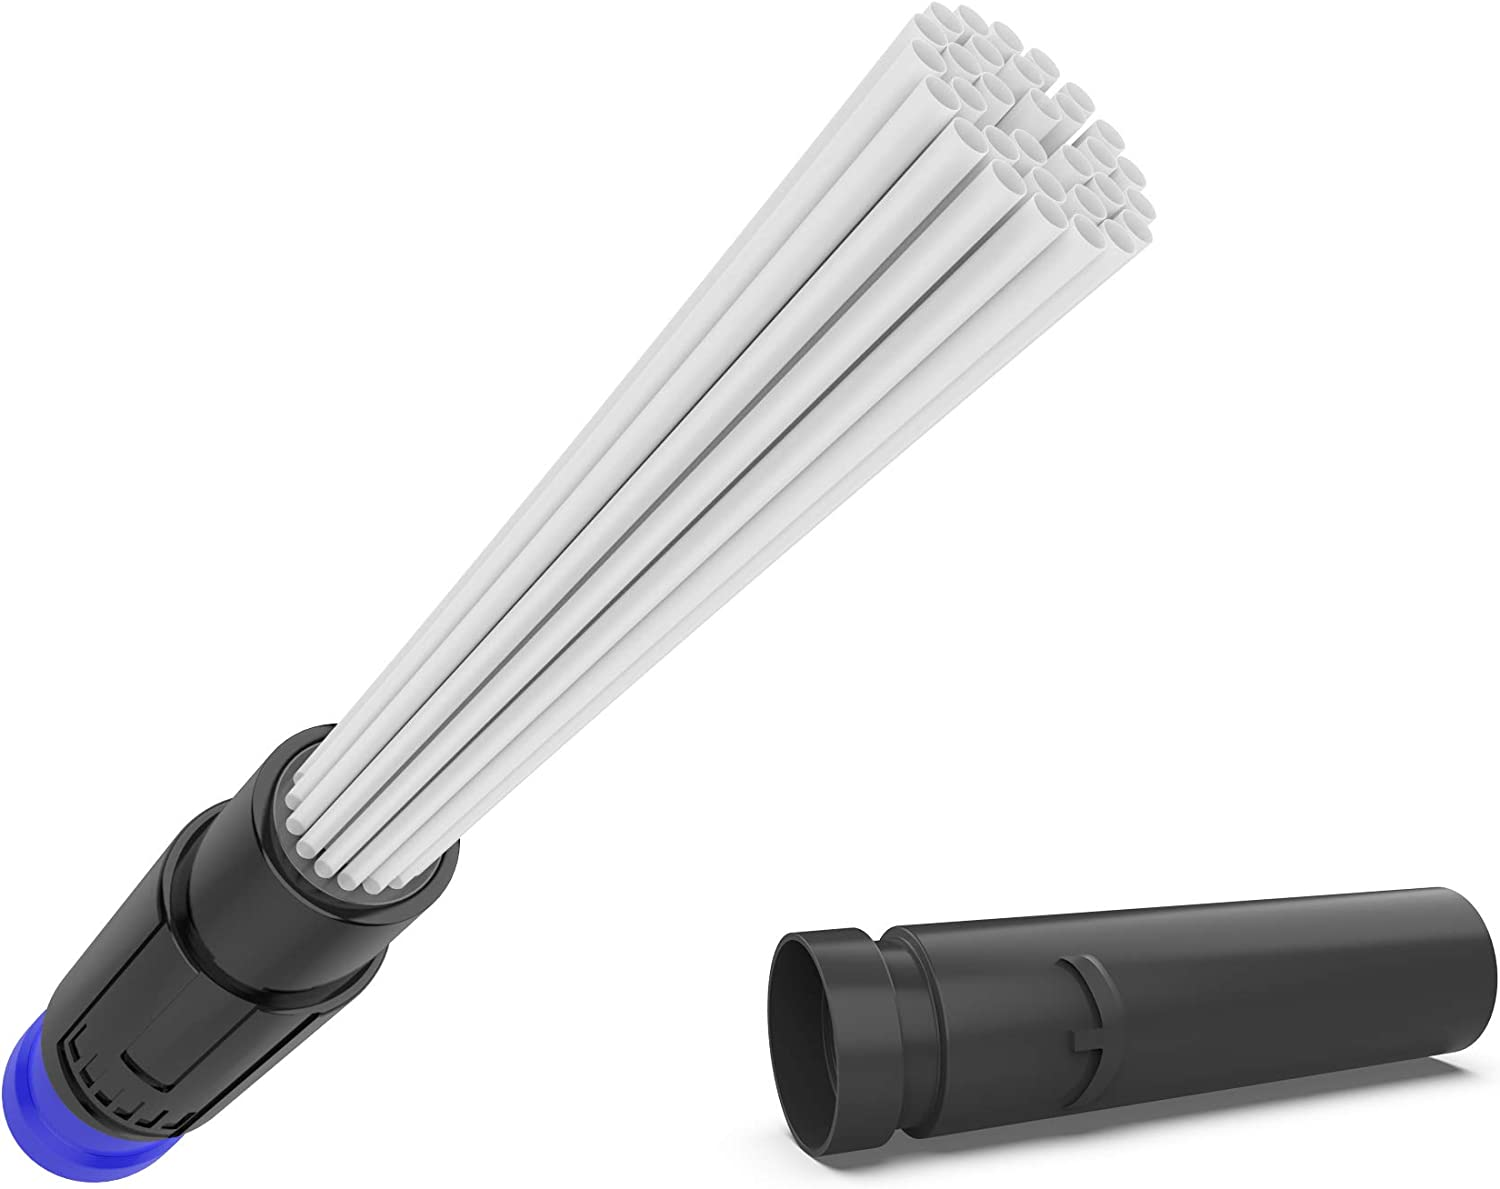 Zenaday CleenSpree Universal Vacuum Attachment Dust Cleaning Set - Brush Tool with Flexible Suction Tube Brushes for Tight, Hard to Reach Gaps - Plus Extra Attachment Extension for Most Common Sizes